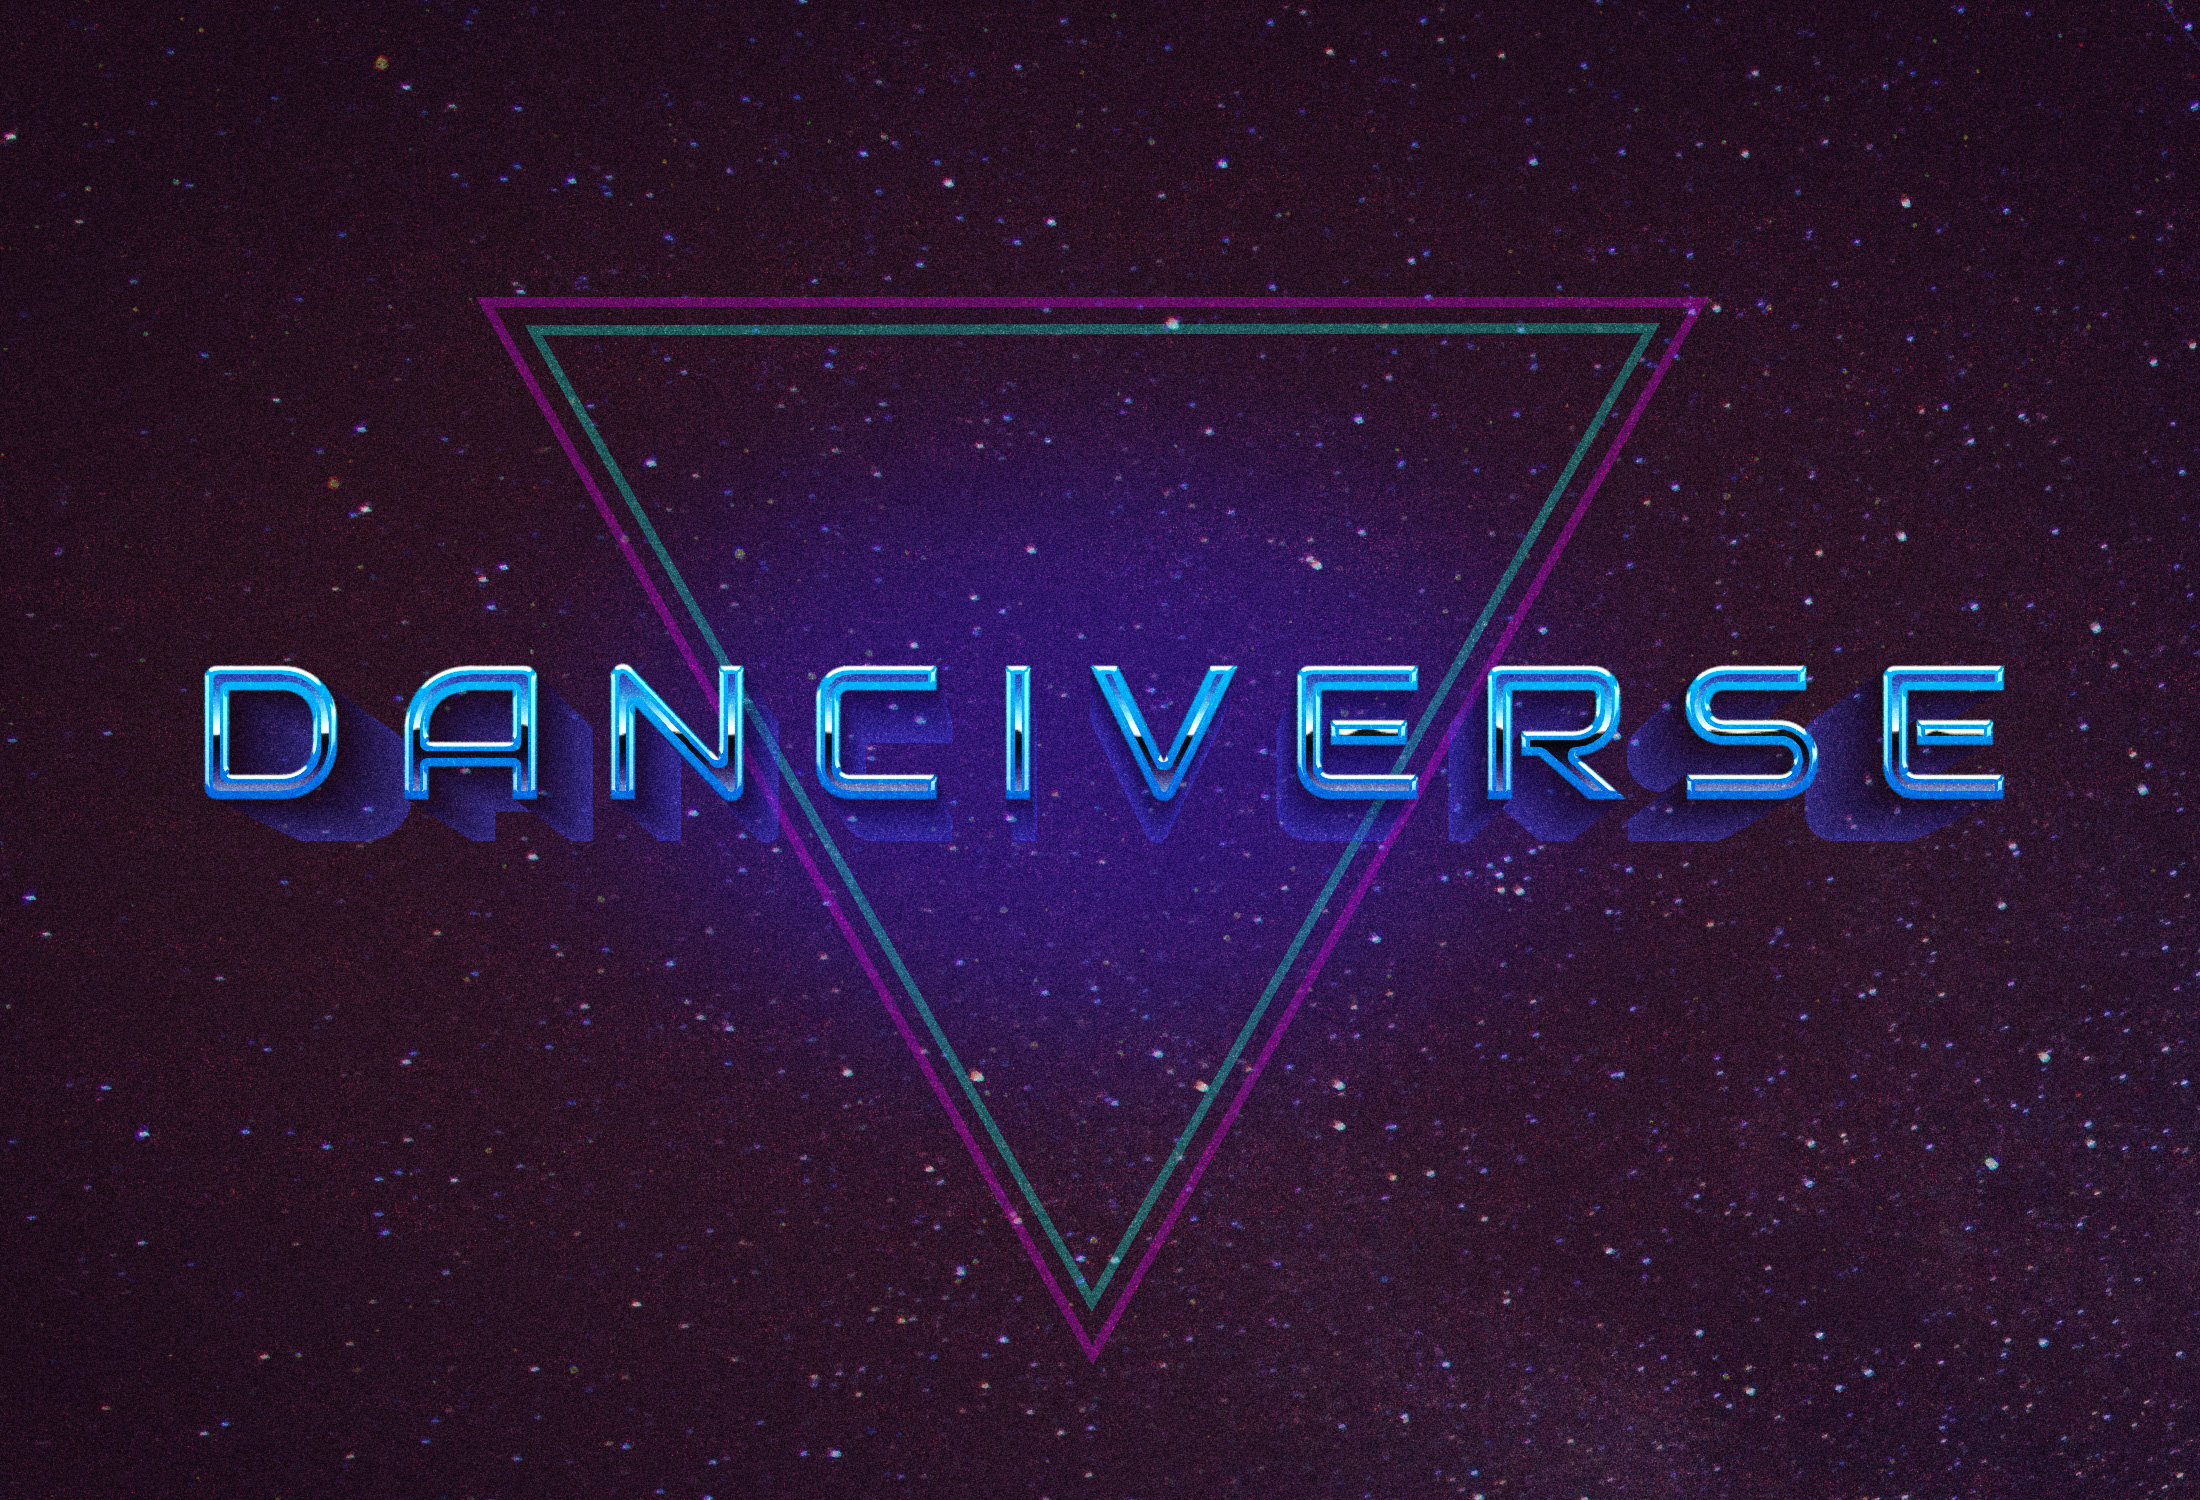 Logo design for Danciverse game